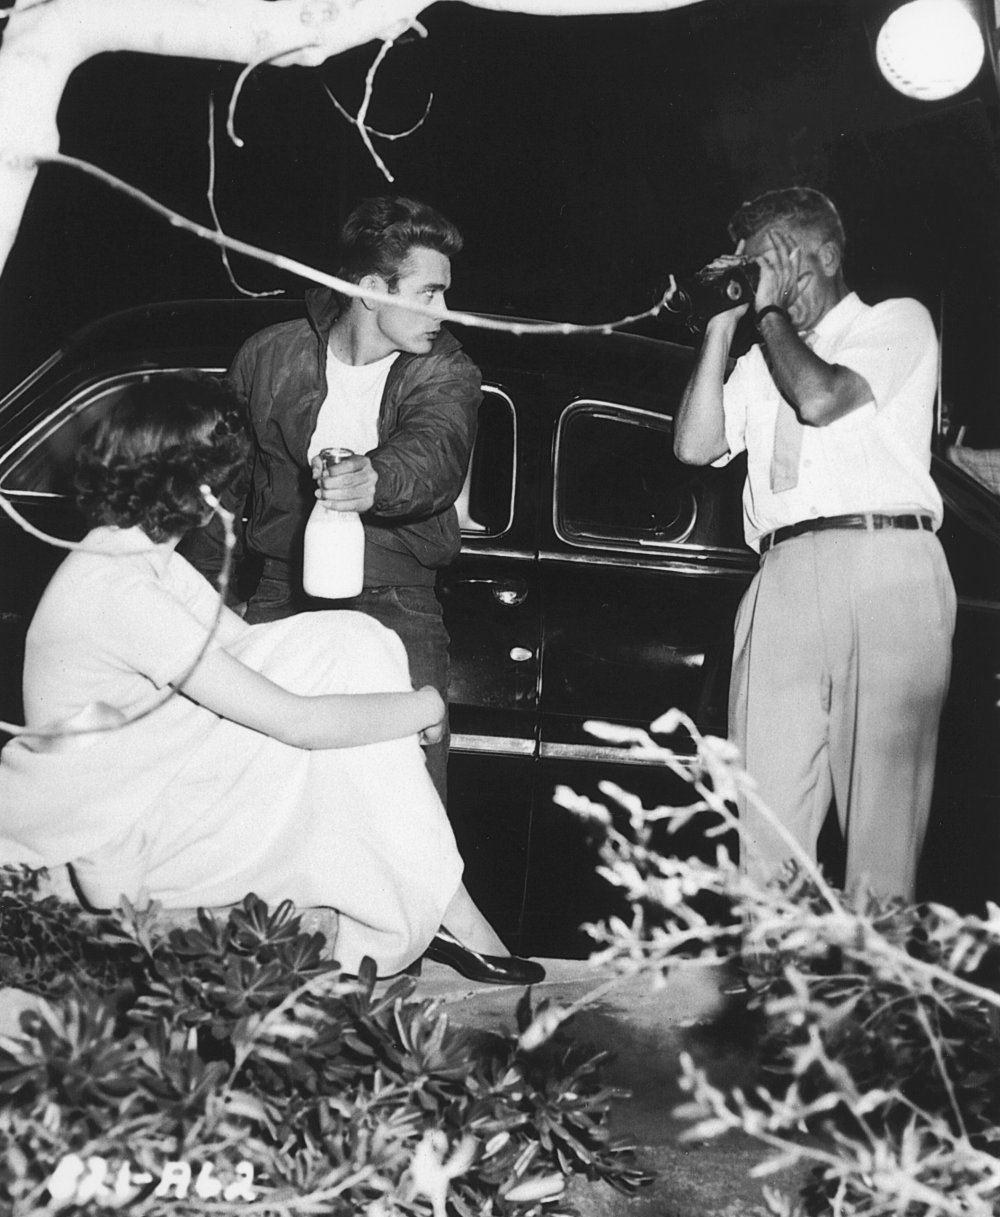 Milking the moment: director Nicholas Ray checks his viewfinder before filming a turbulent moment between James Dean and Natalie Wood